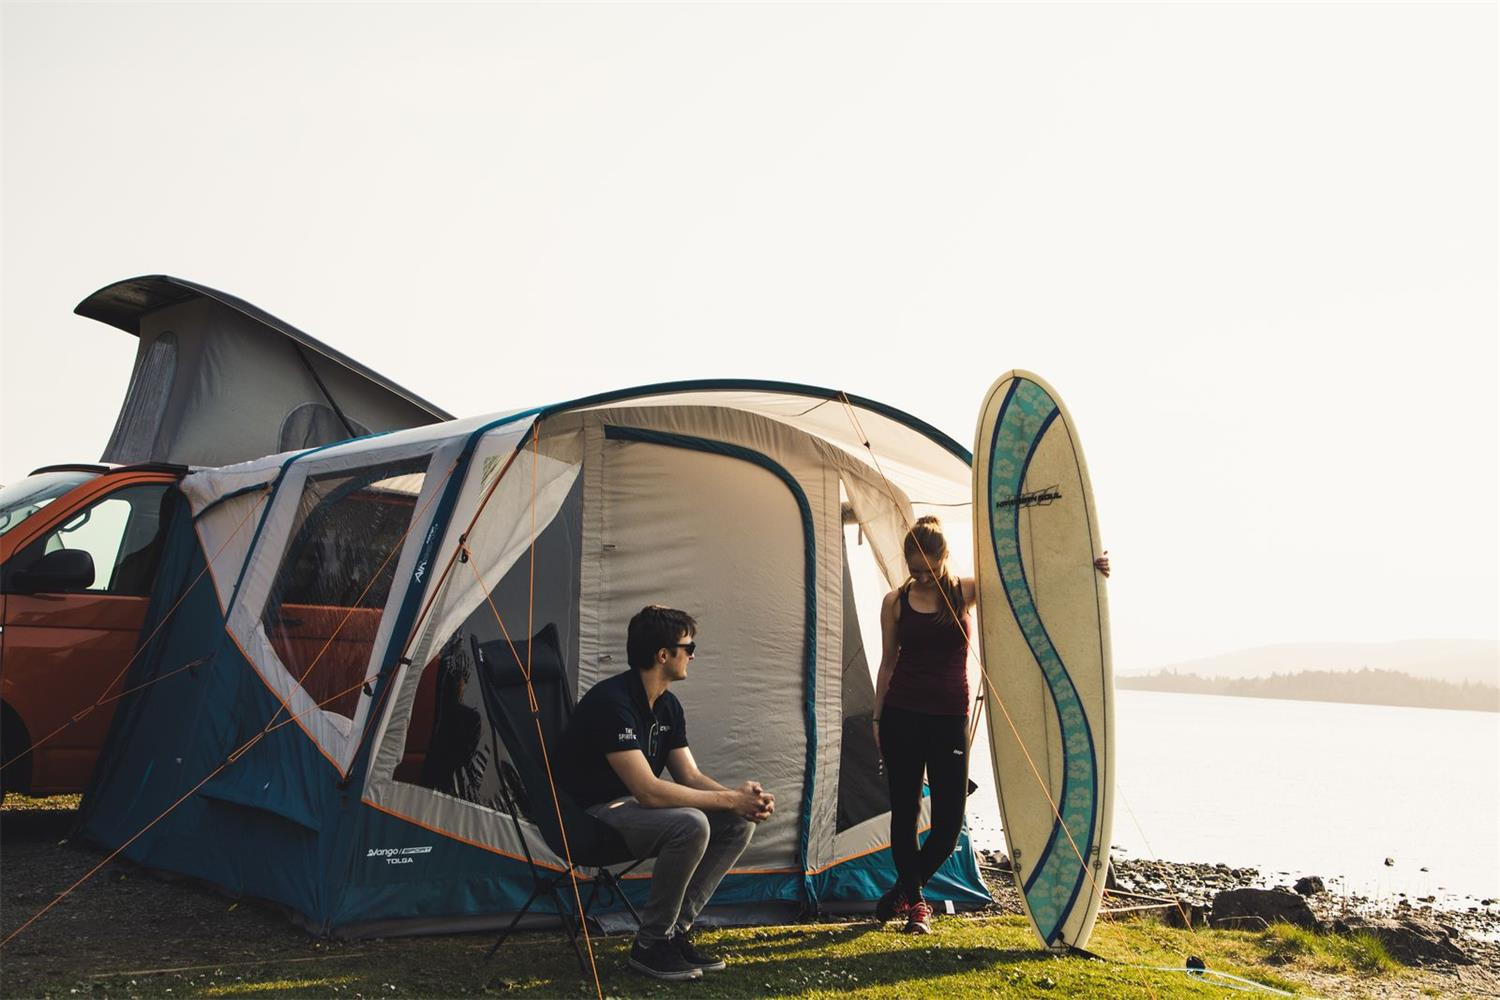 A prefect pitch set up with the Tolga driveaway awning from the Vango Sports Collection.